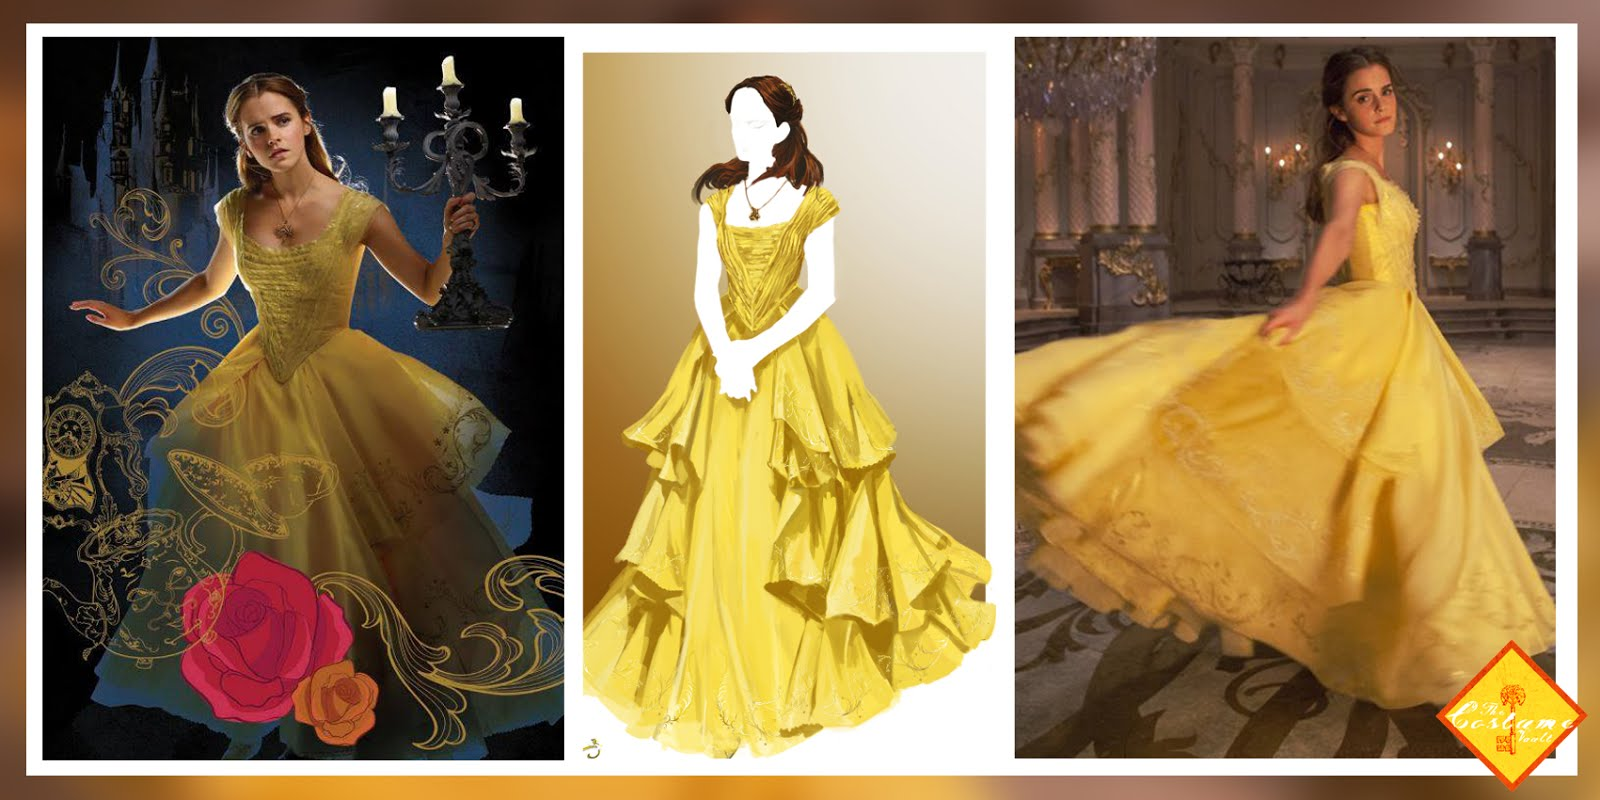 Burning Question: What\'s wrong with Belle\'s gown?